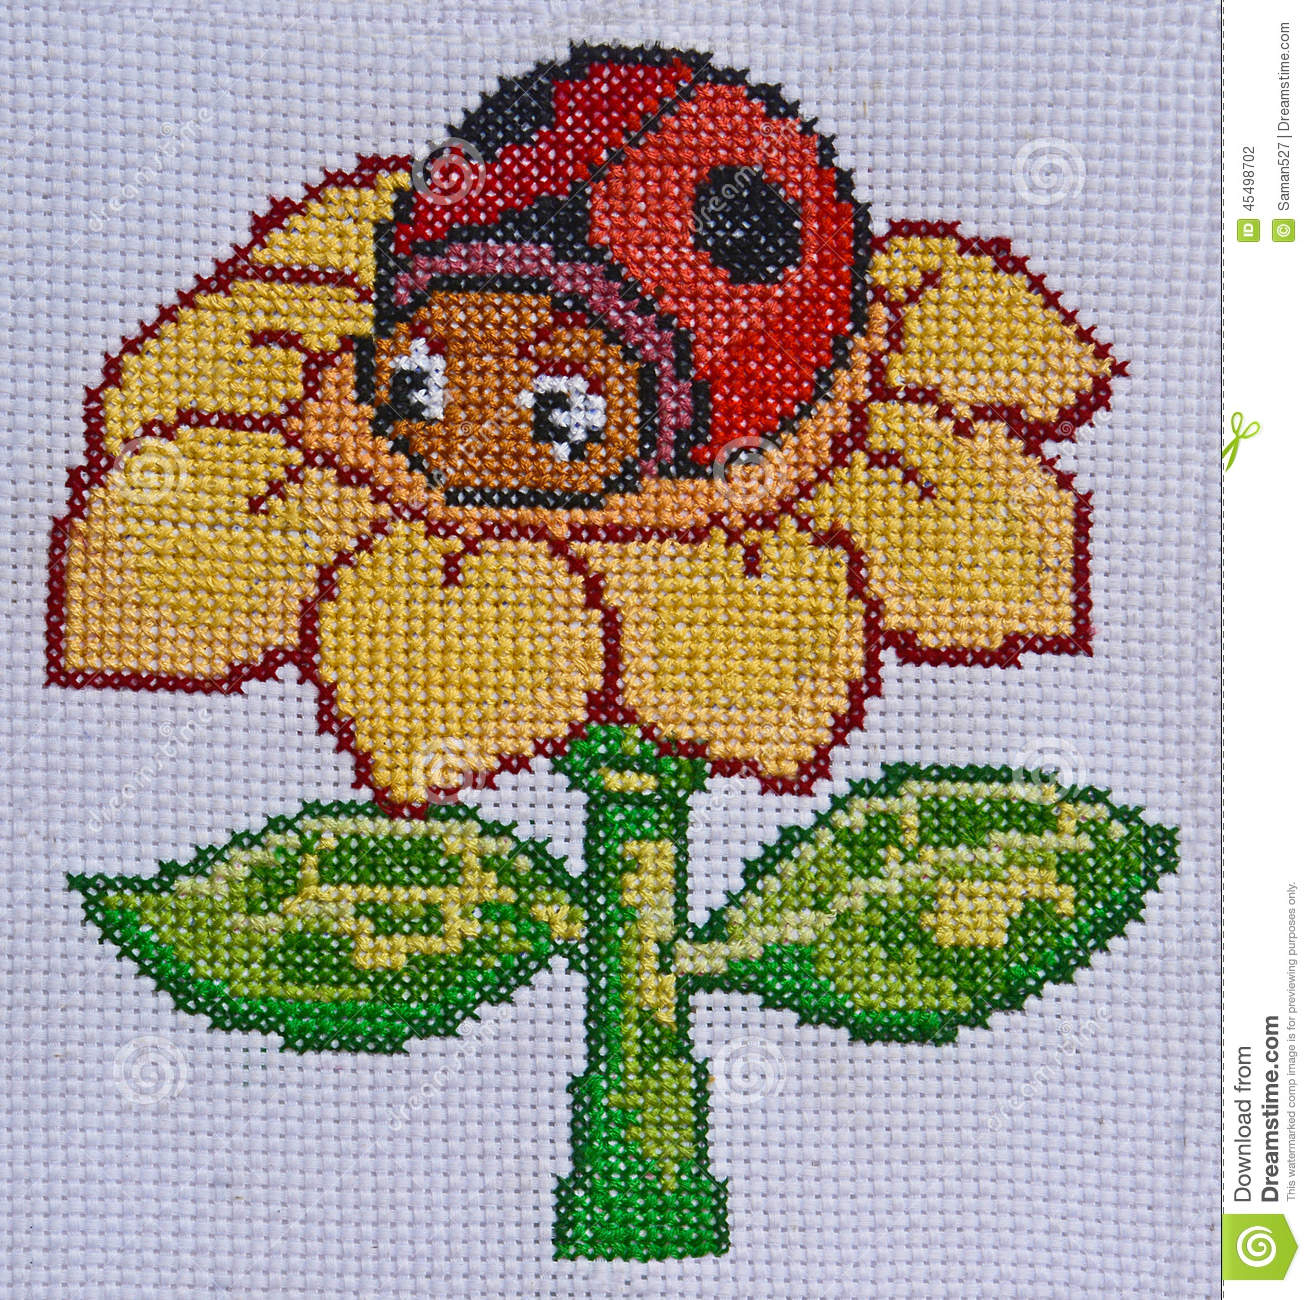 Hand Made Embroidery And Cross Stitch Flower And Ladybird Design